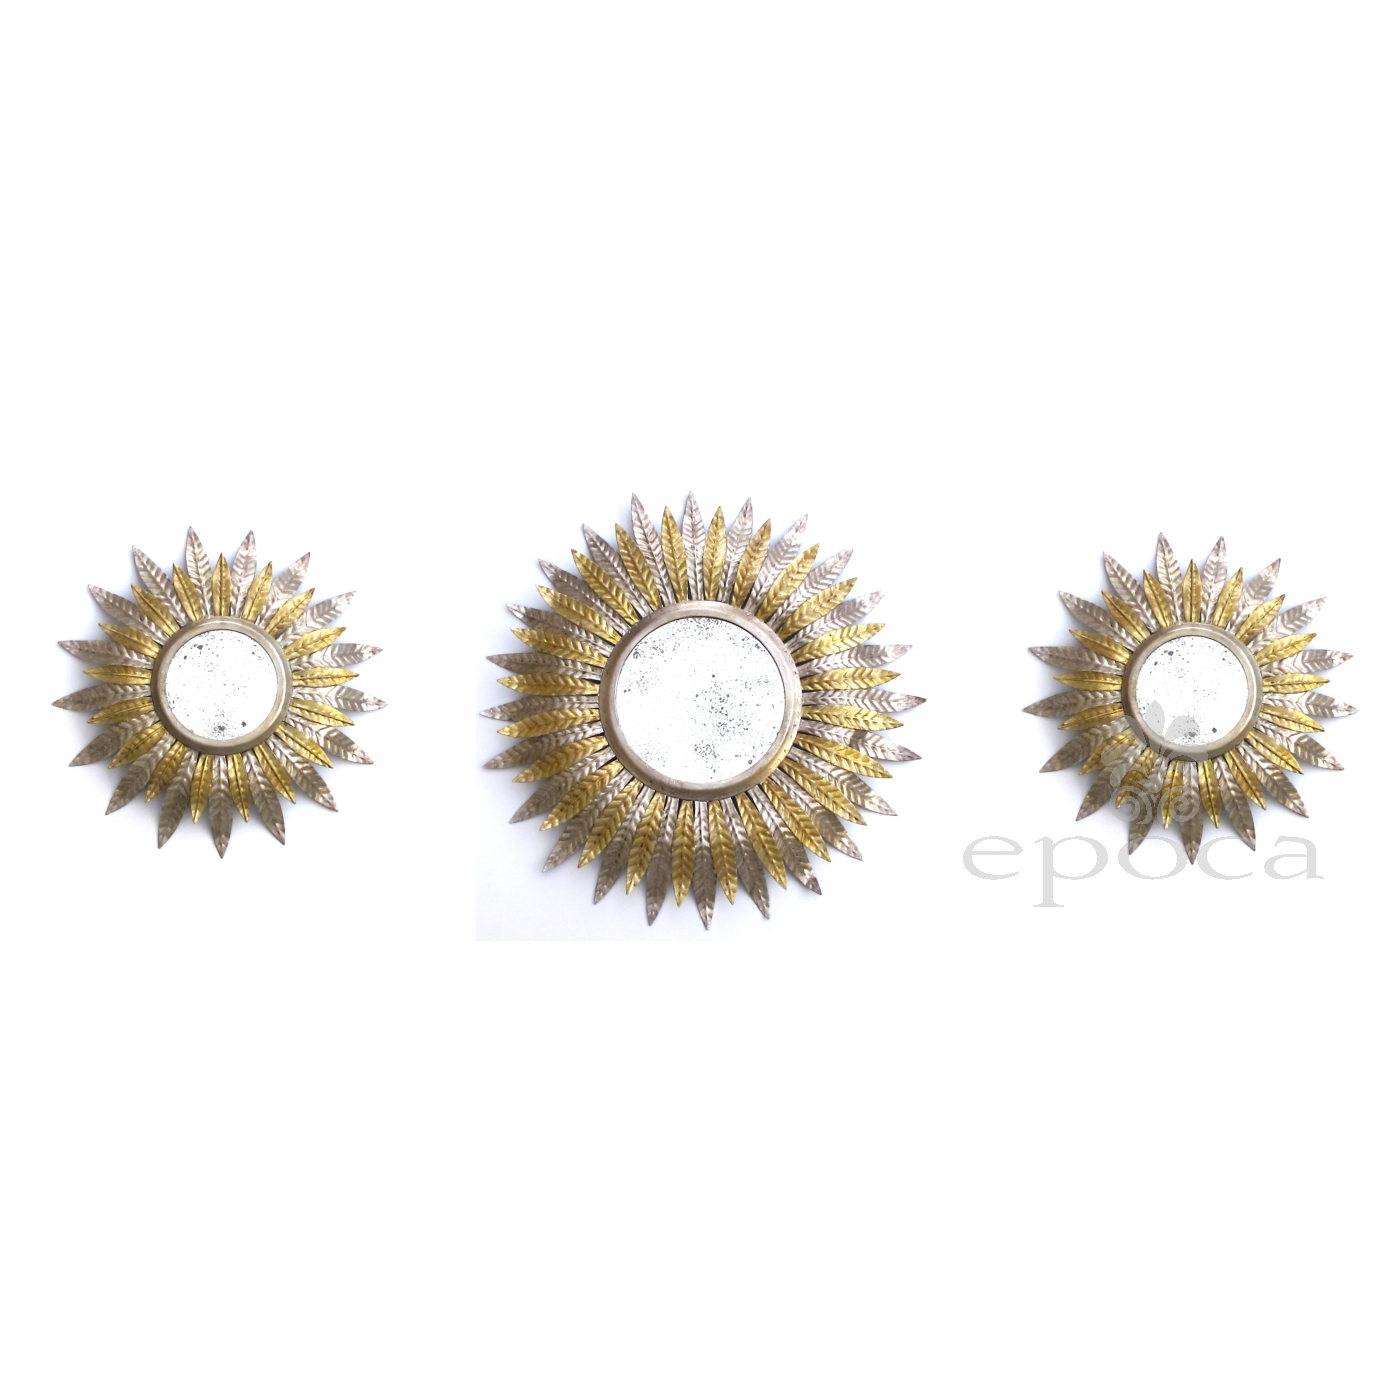 Fanciful Set Of 3 French Art Deco Silver And Gold Gilt Tole Sunburst Mirrors